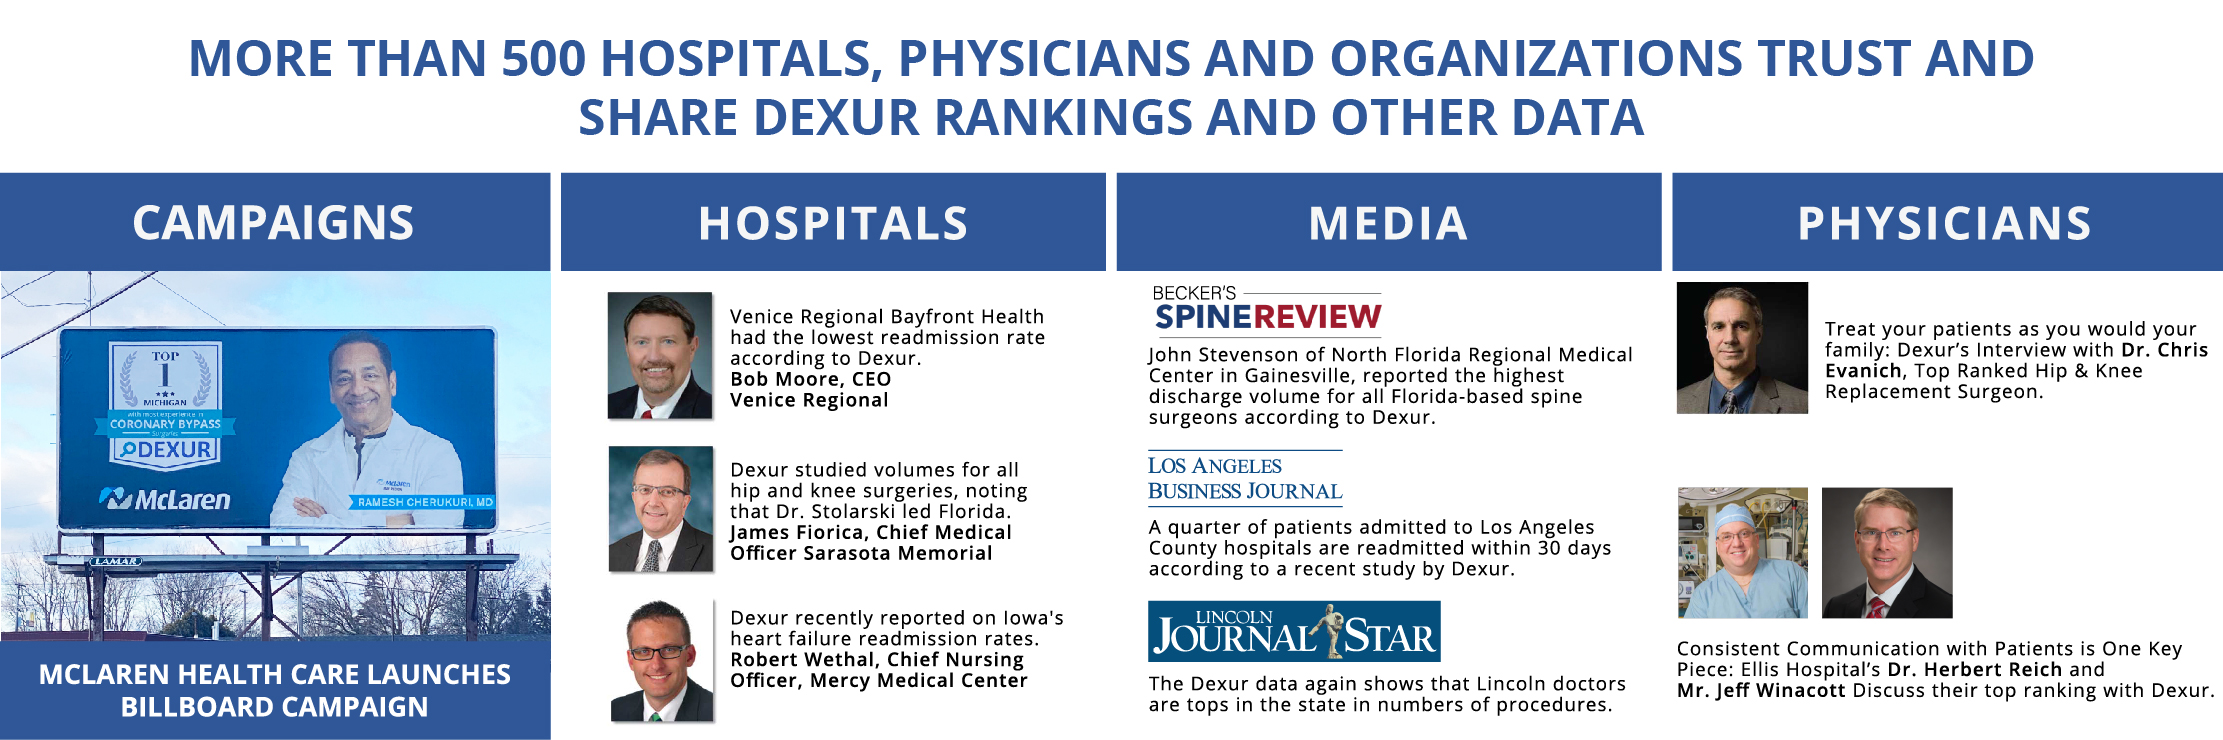 Dexur Rankings are Trusted